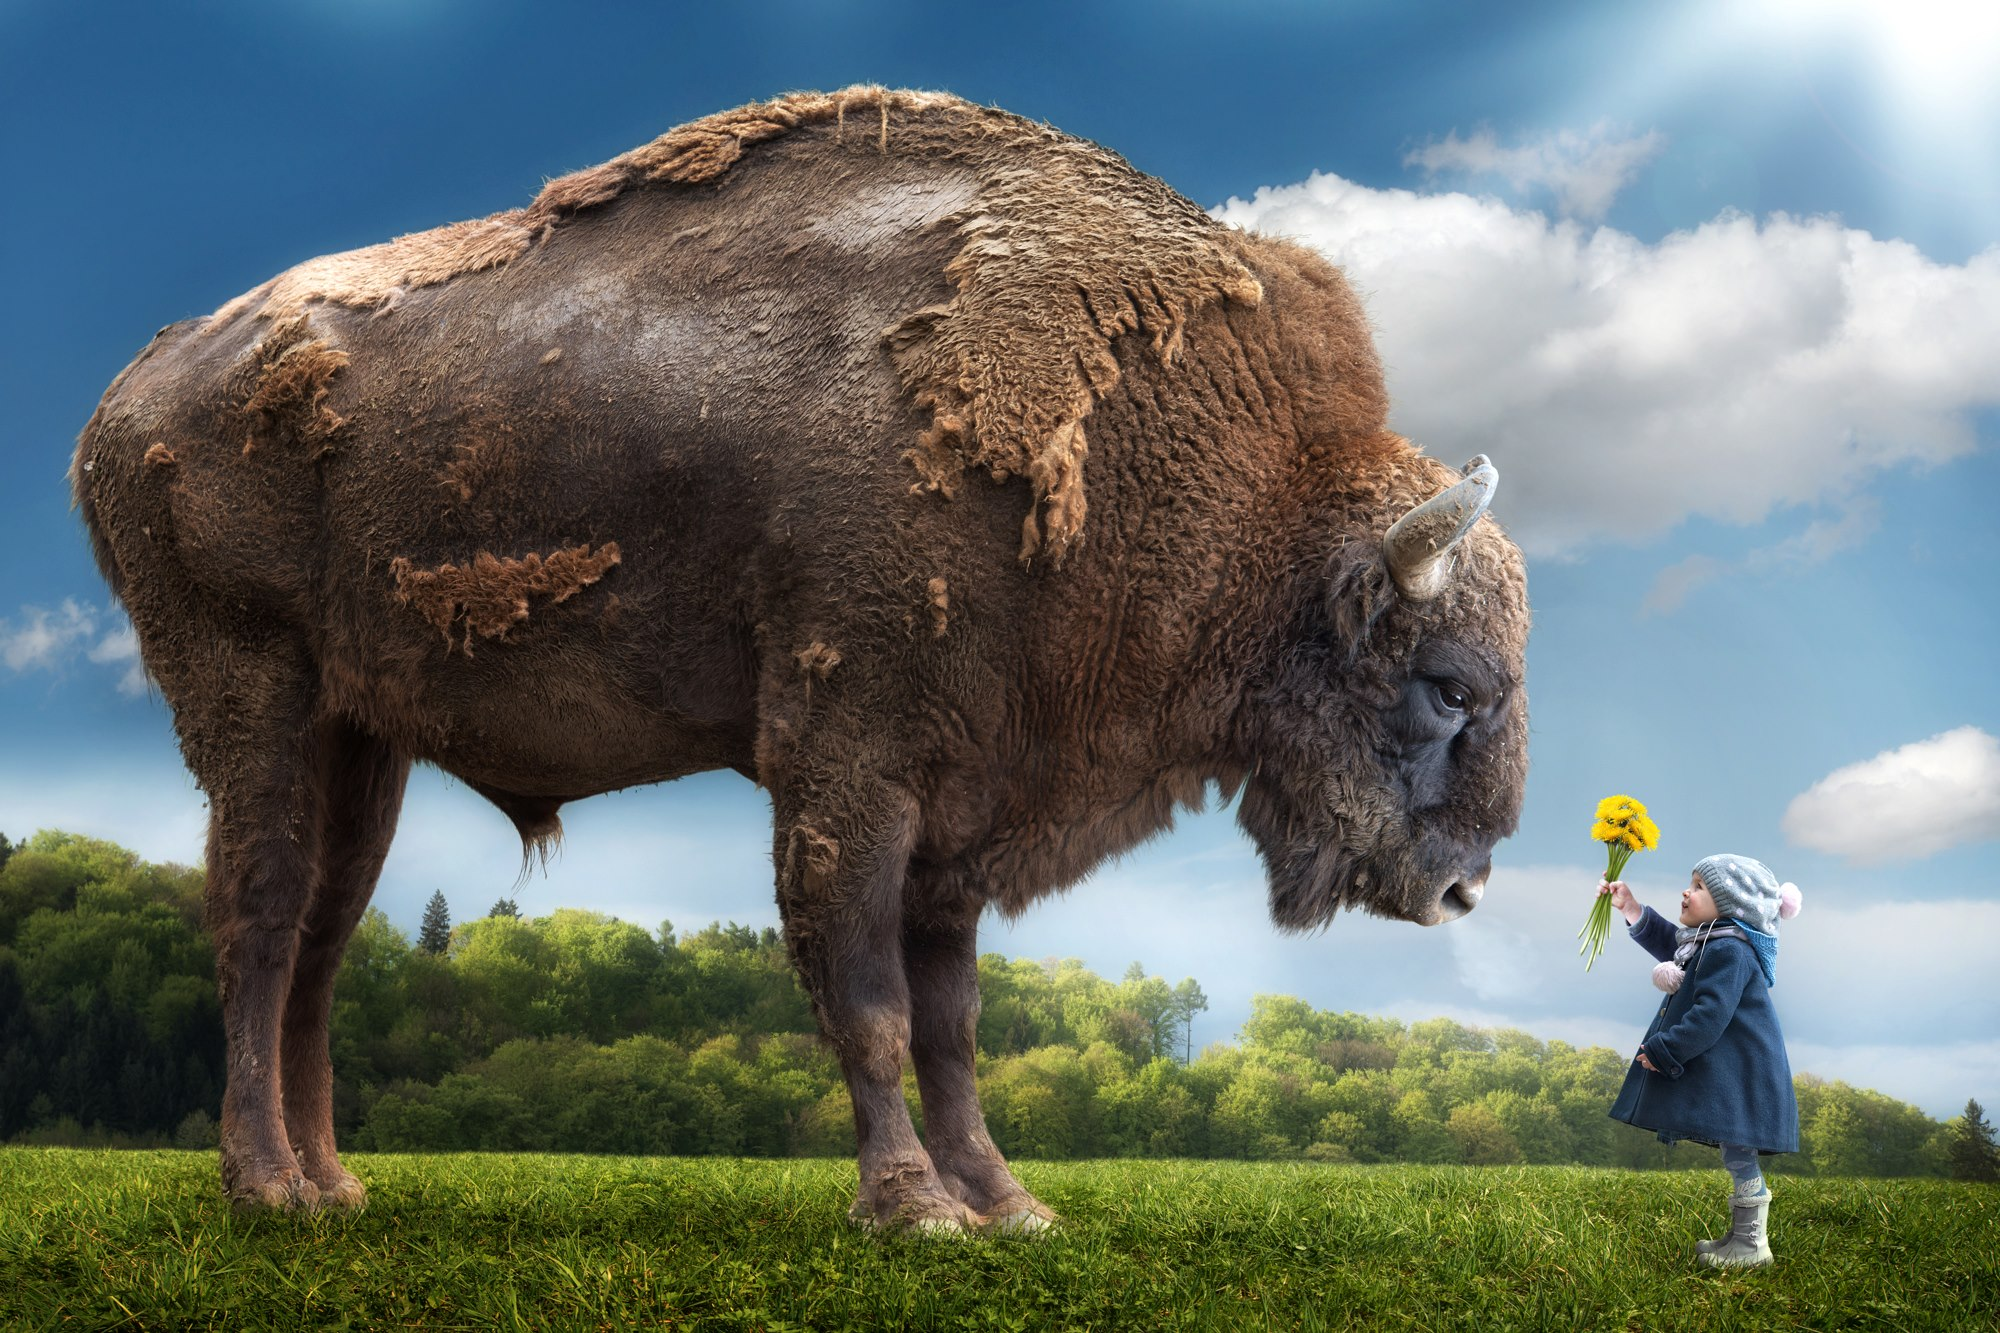 John Wilhelm is a photoholic – Bizon and girl – Disarming innocence